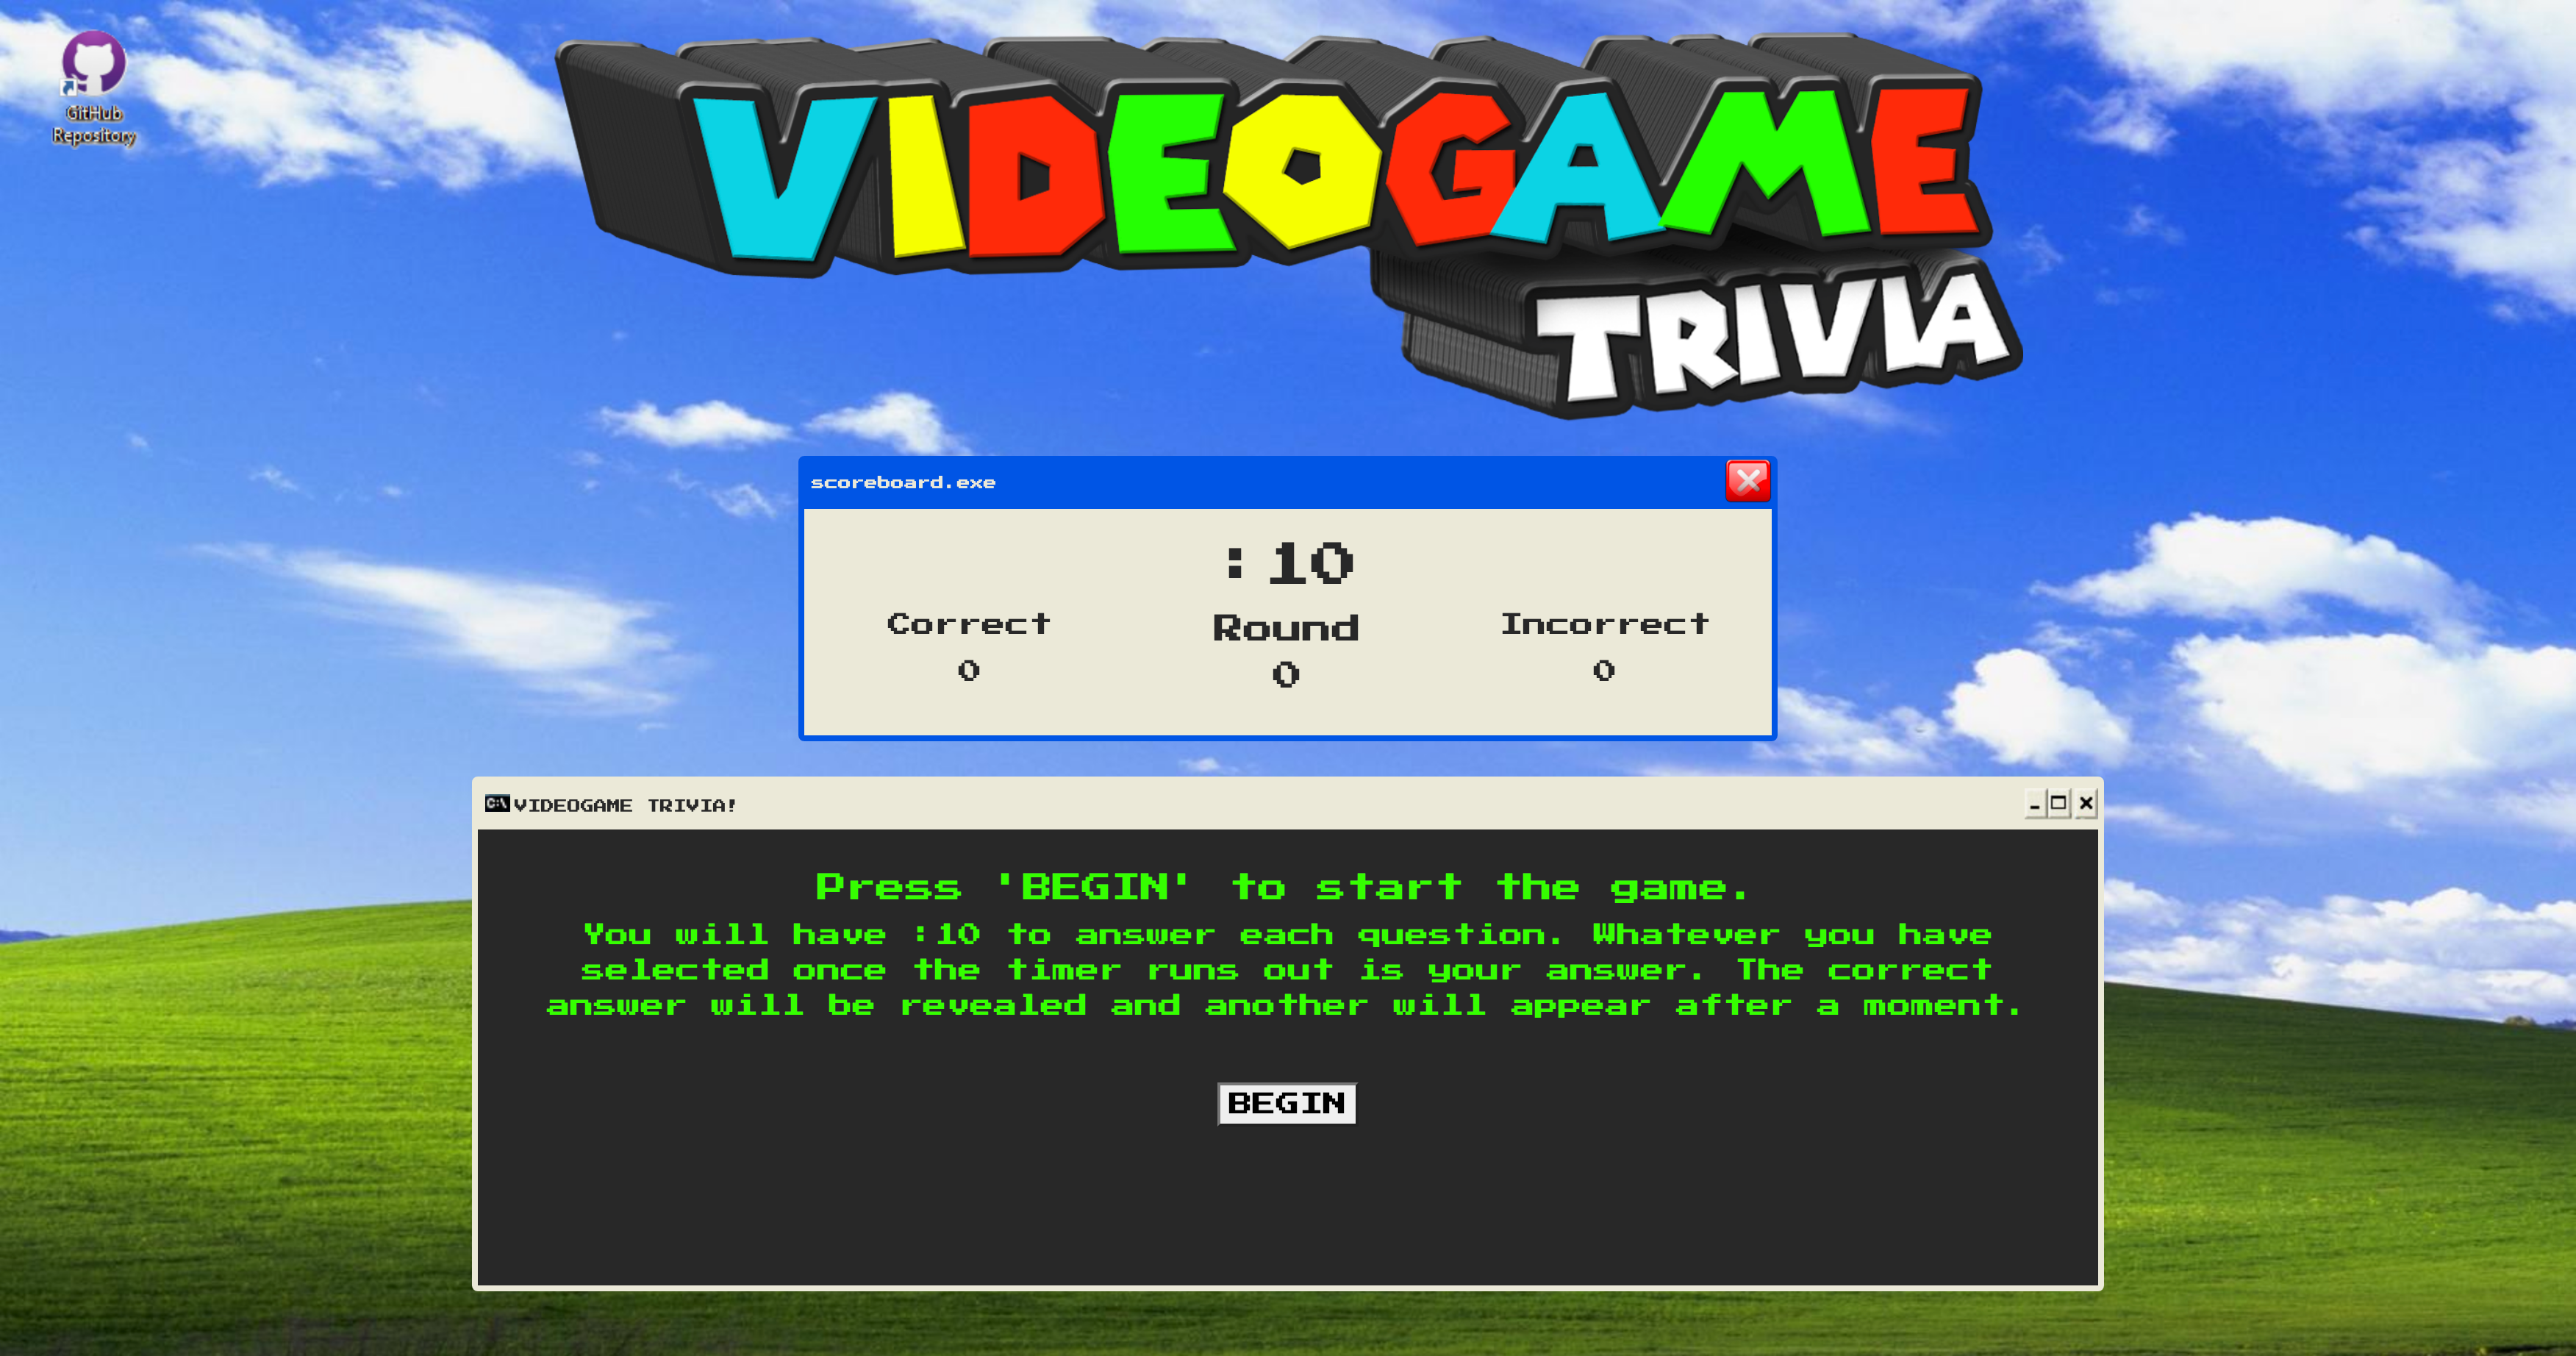 A timed trivia game that will provide a set amount of questions for the user to answer within specified time frame. The purpose of this game is to show how I can handle using jQuery DOM manipulation and setTimeout() events in JavaScript. The page will keep track of wins v. losses & round without refreshing the page.